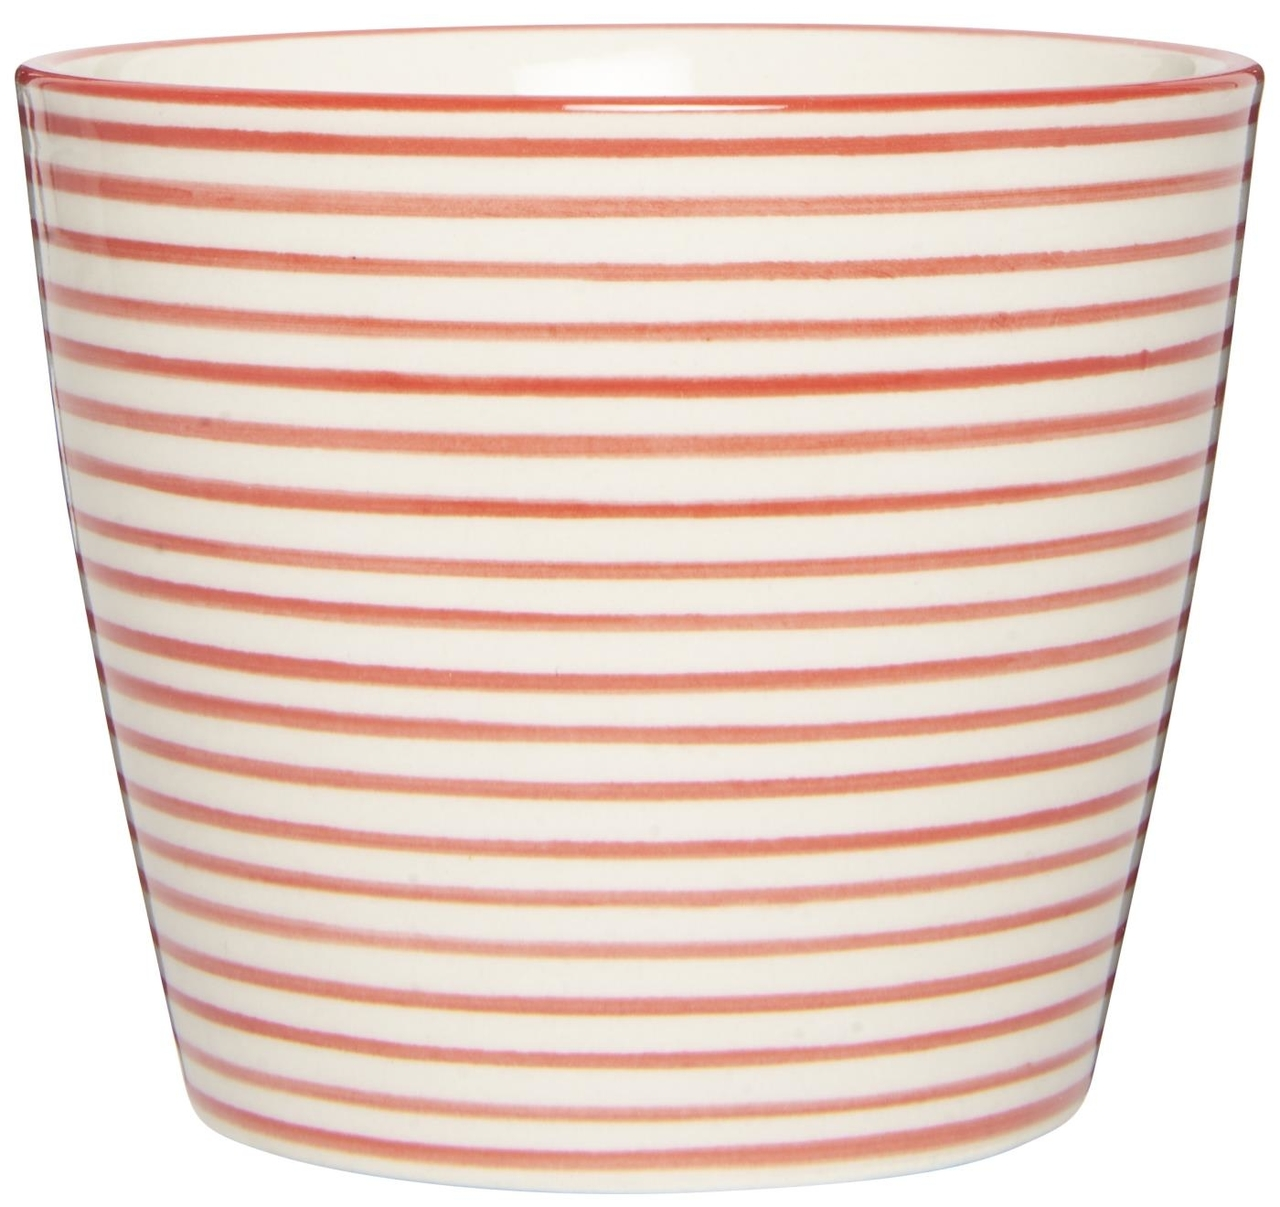 Ib Laursen Becher gross Casablanca Stripes